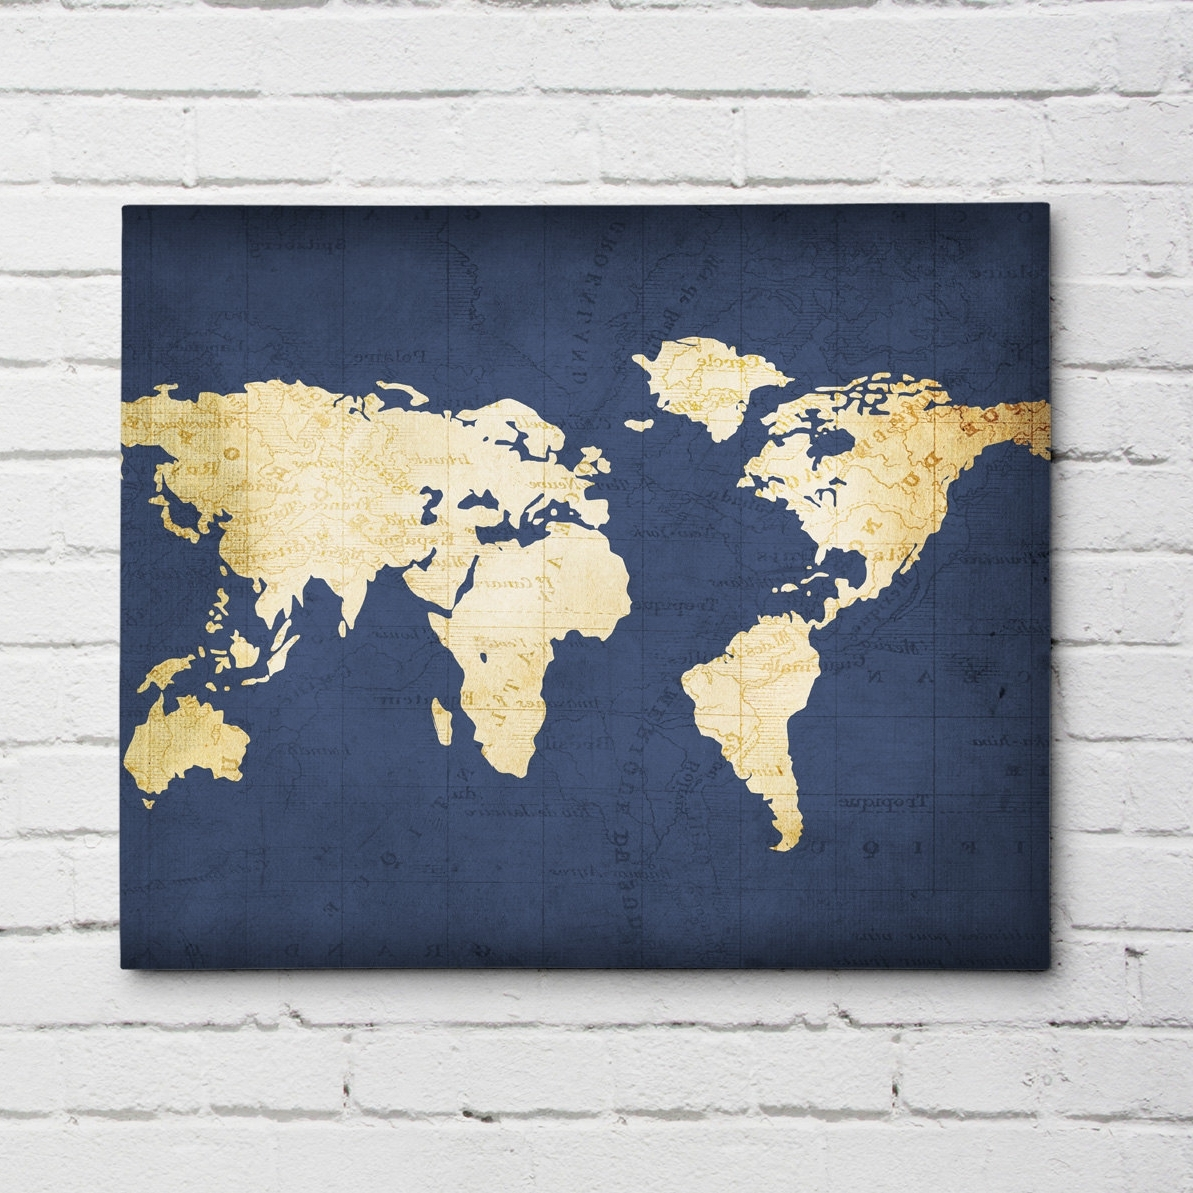 Navy Blue Wall Art Intended For Fashionable Navy Blue World Map (View 6 of 15)